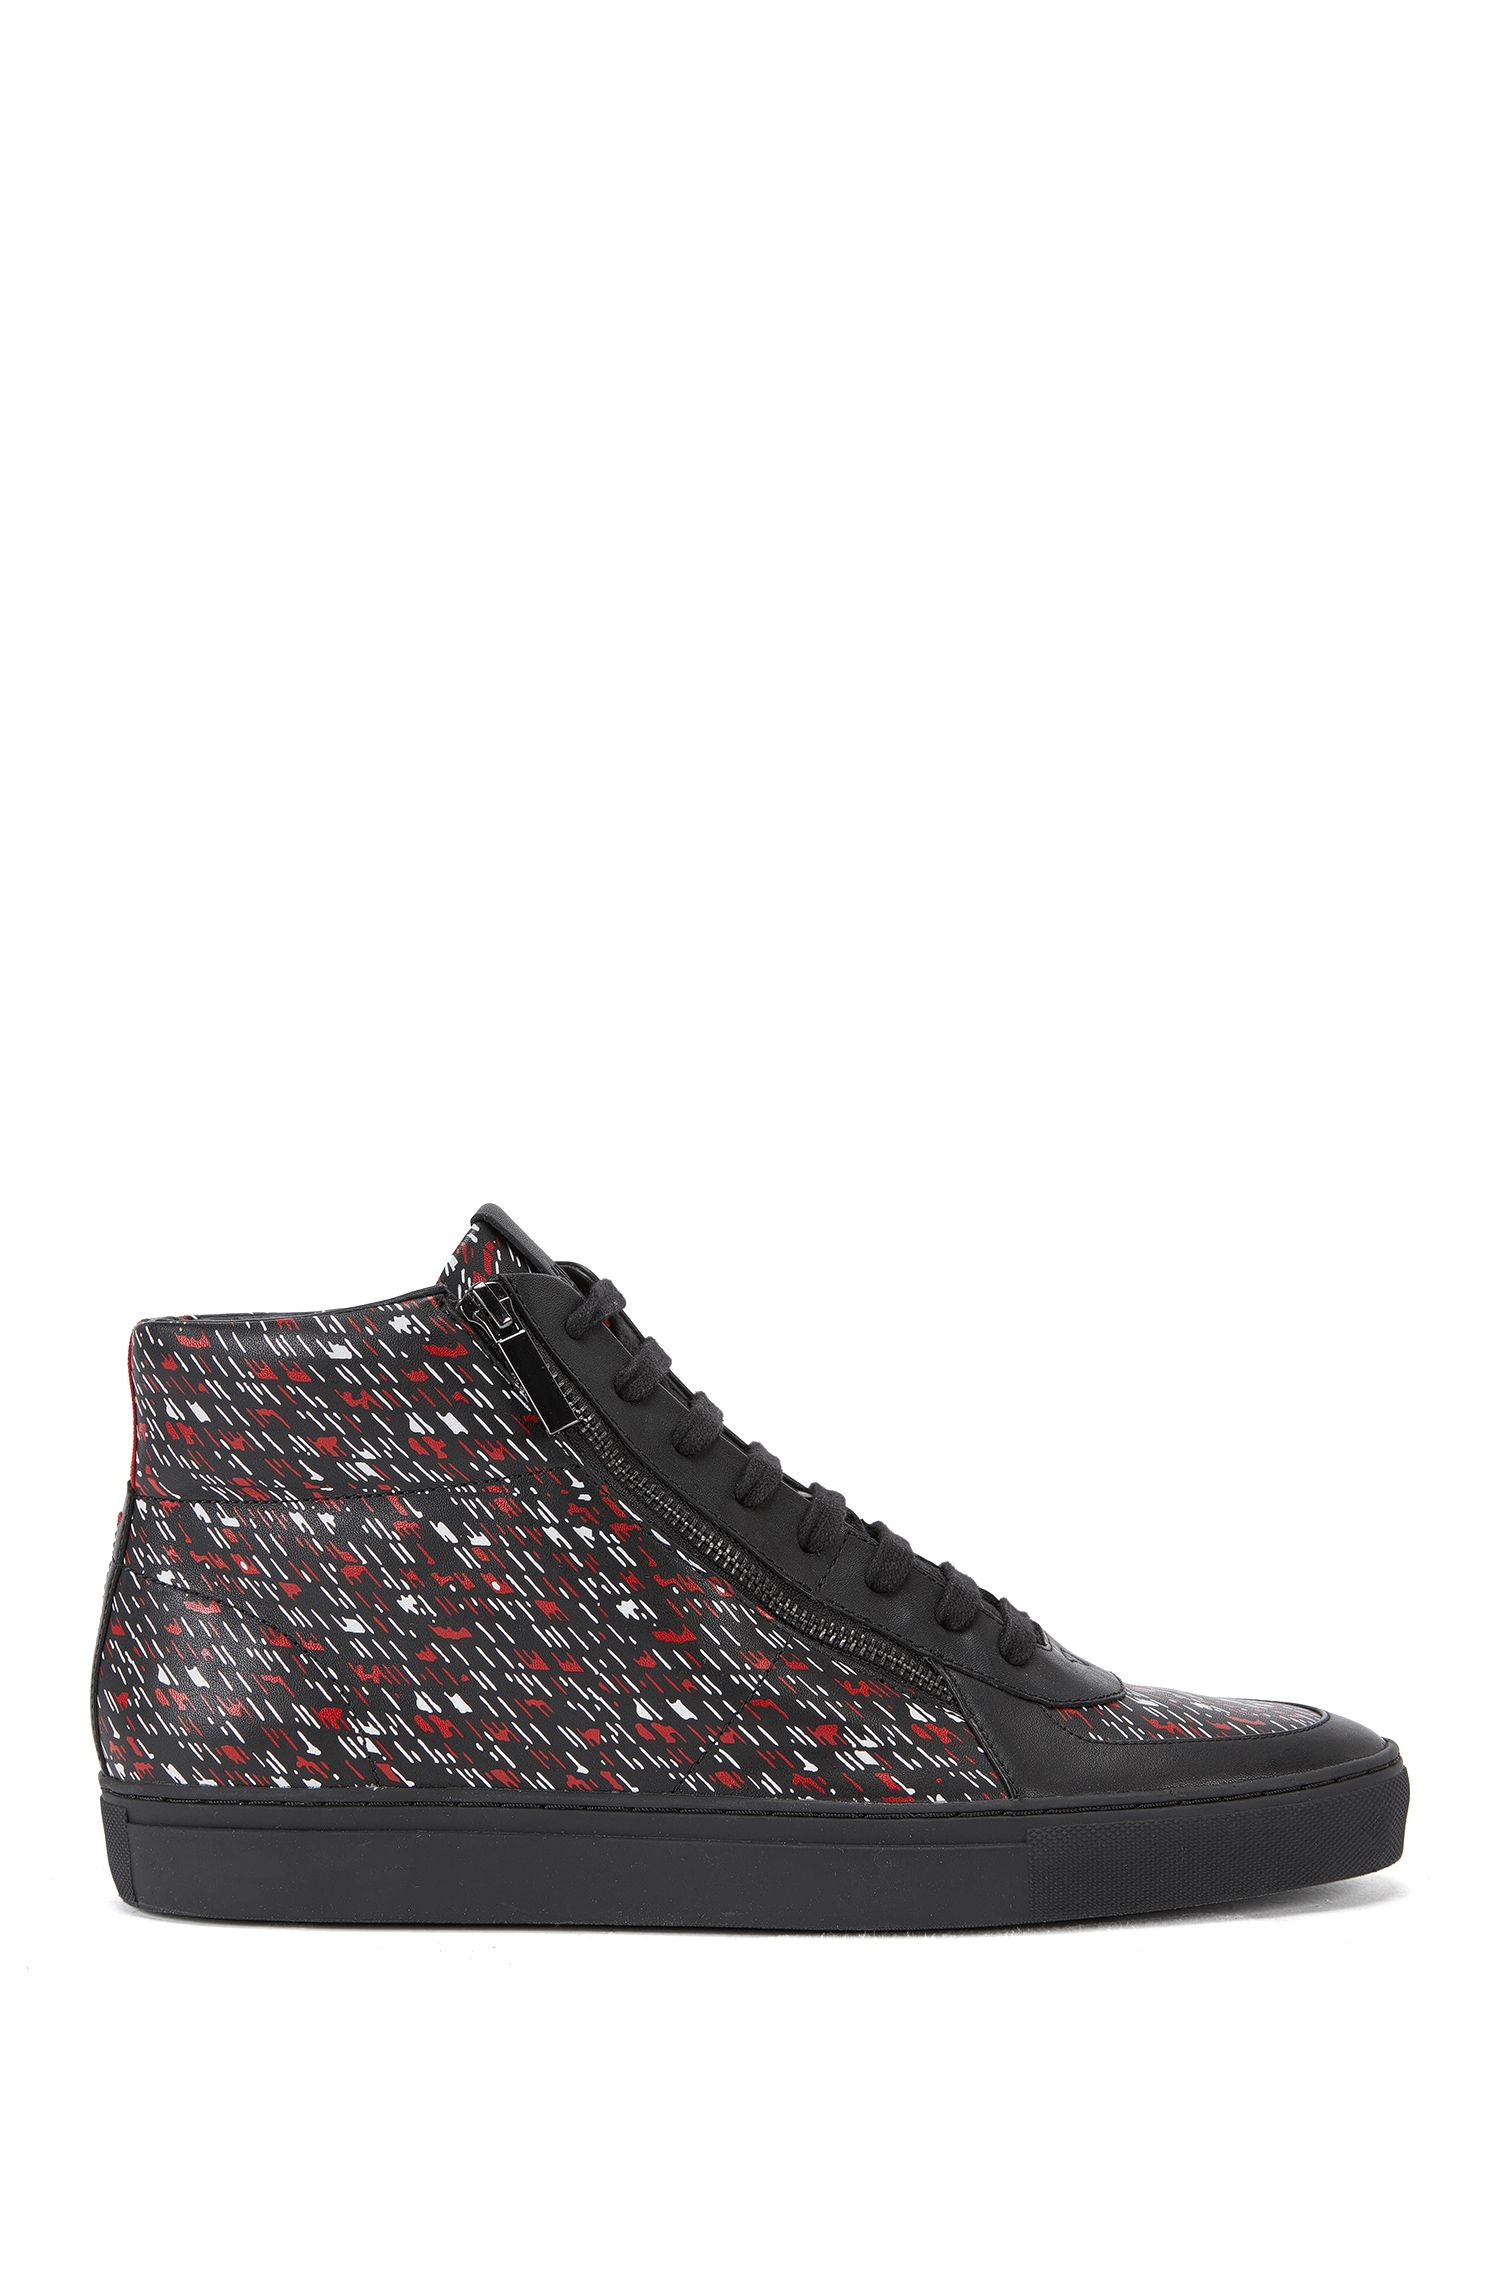 Hightop-Sneakers aus Leder mit Grafik-Print